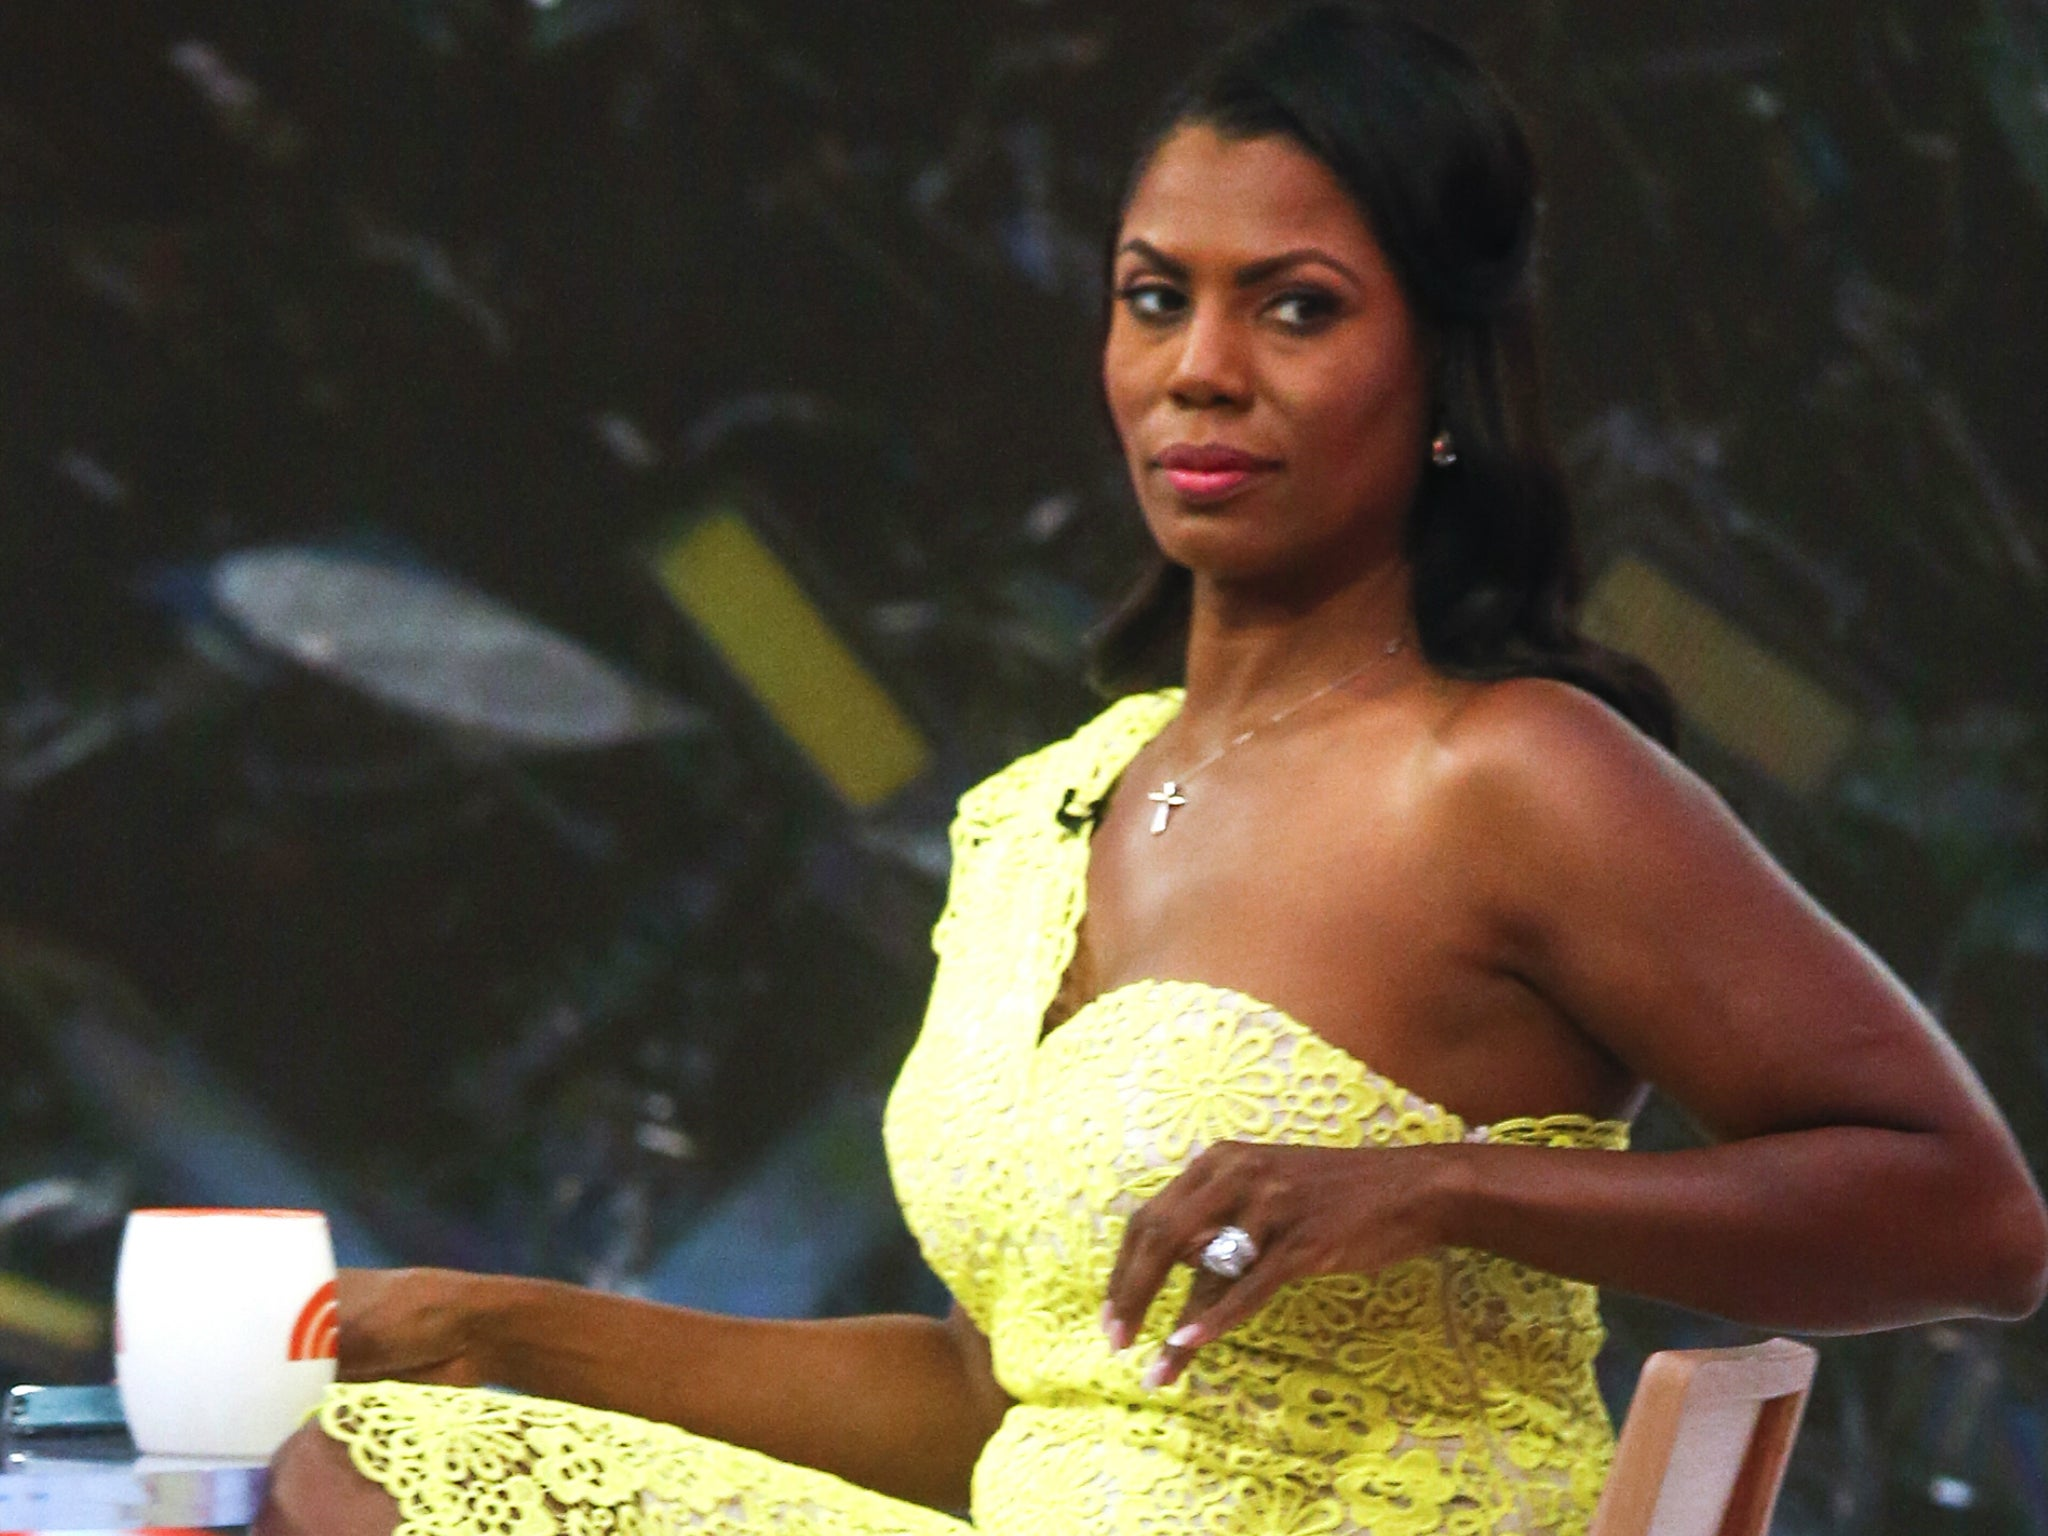 Omarosa Manigault releases new Trump audio tape and says president does 'not know what's going on in White House'